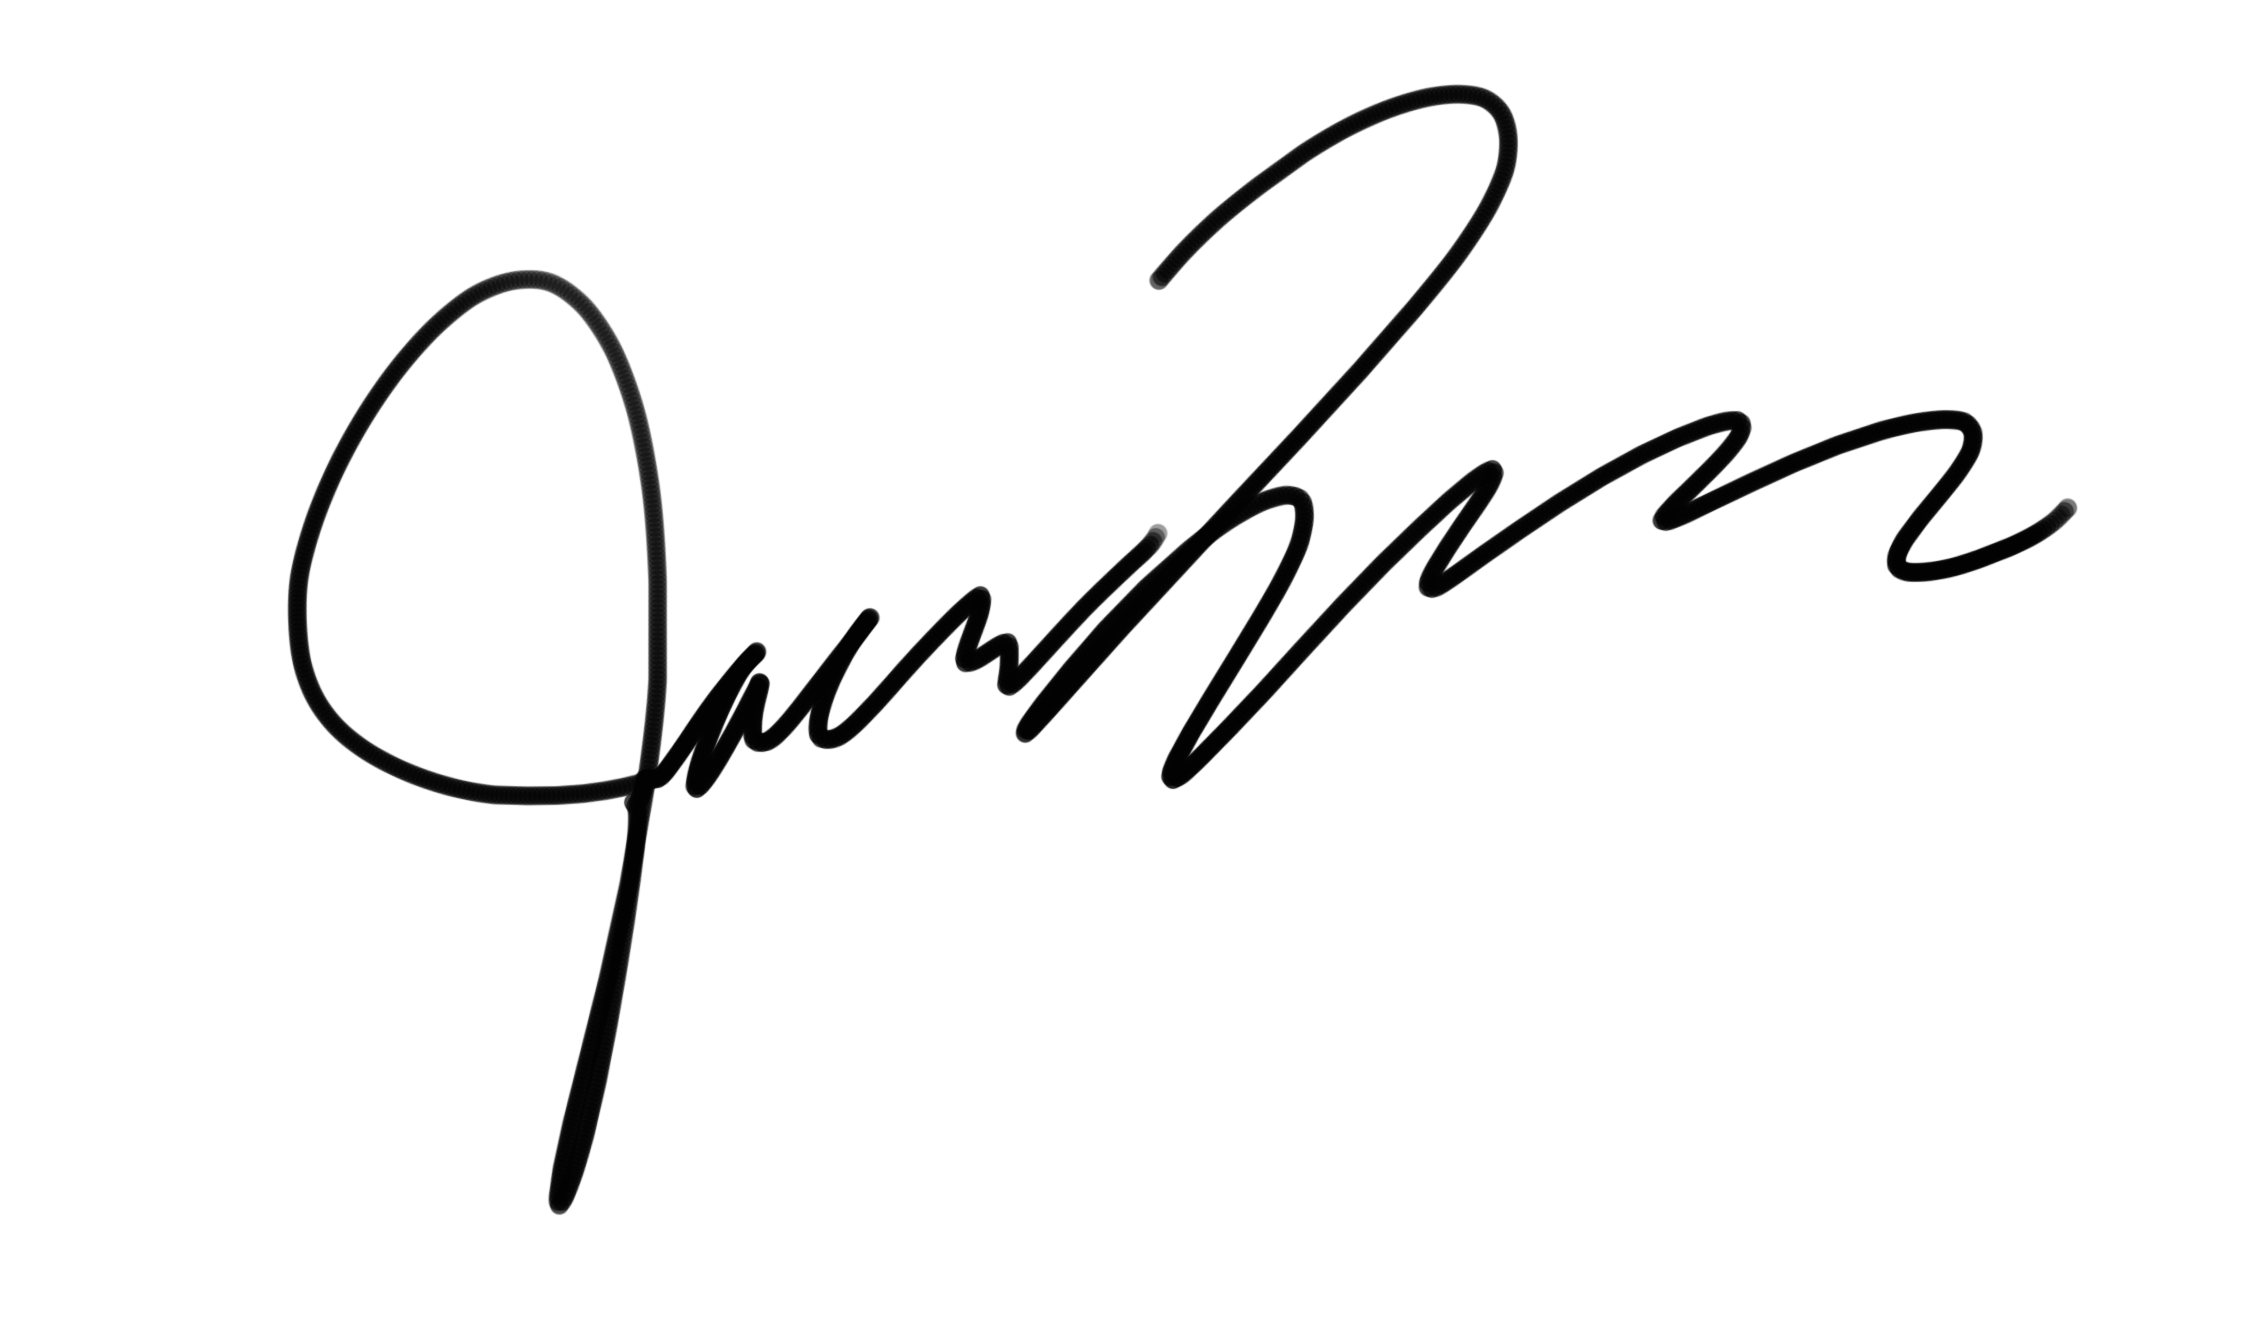 Jake Popek Signature